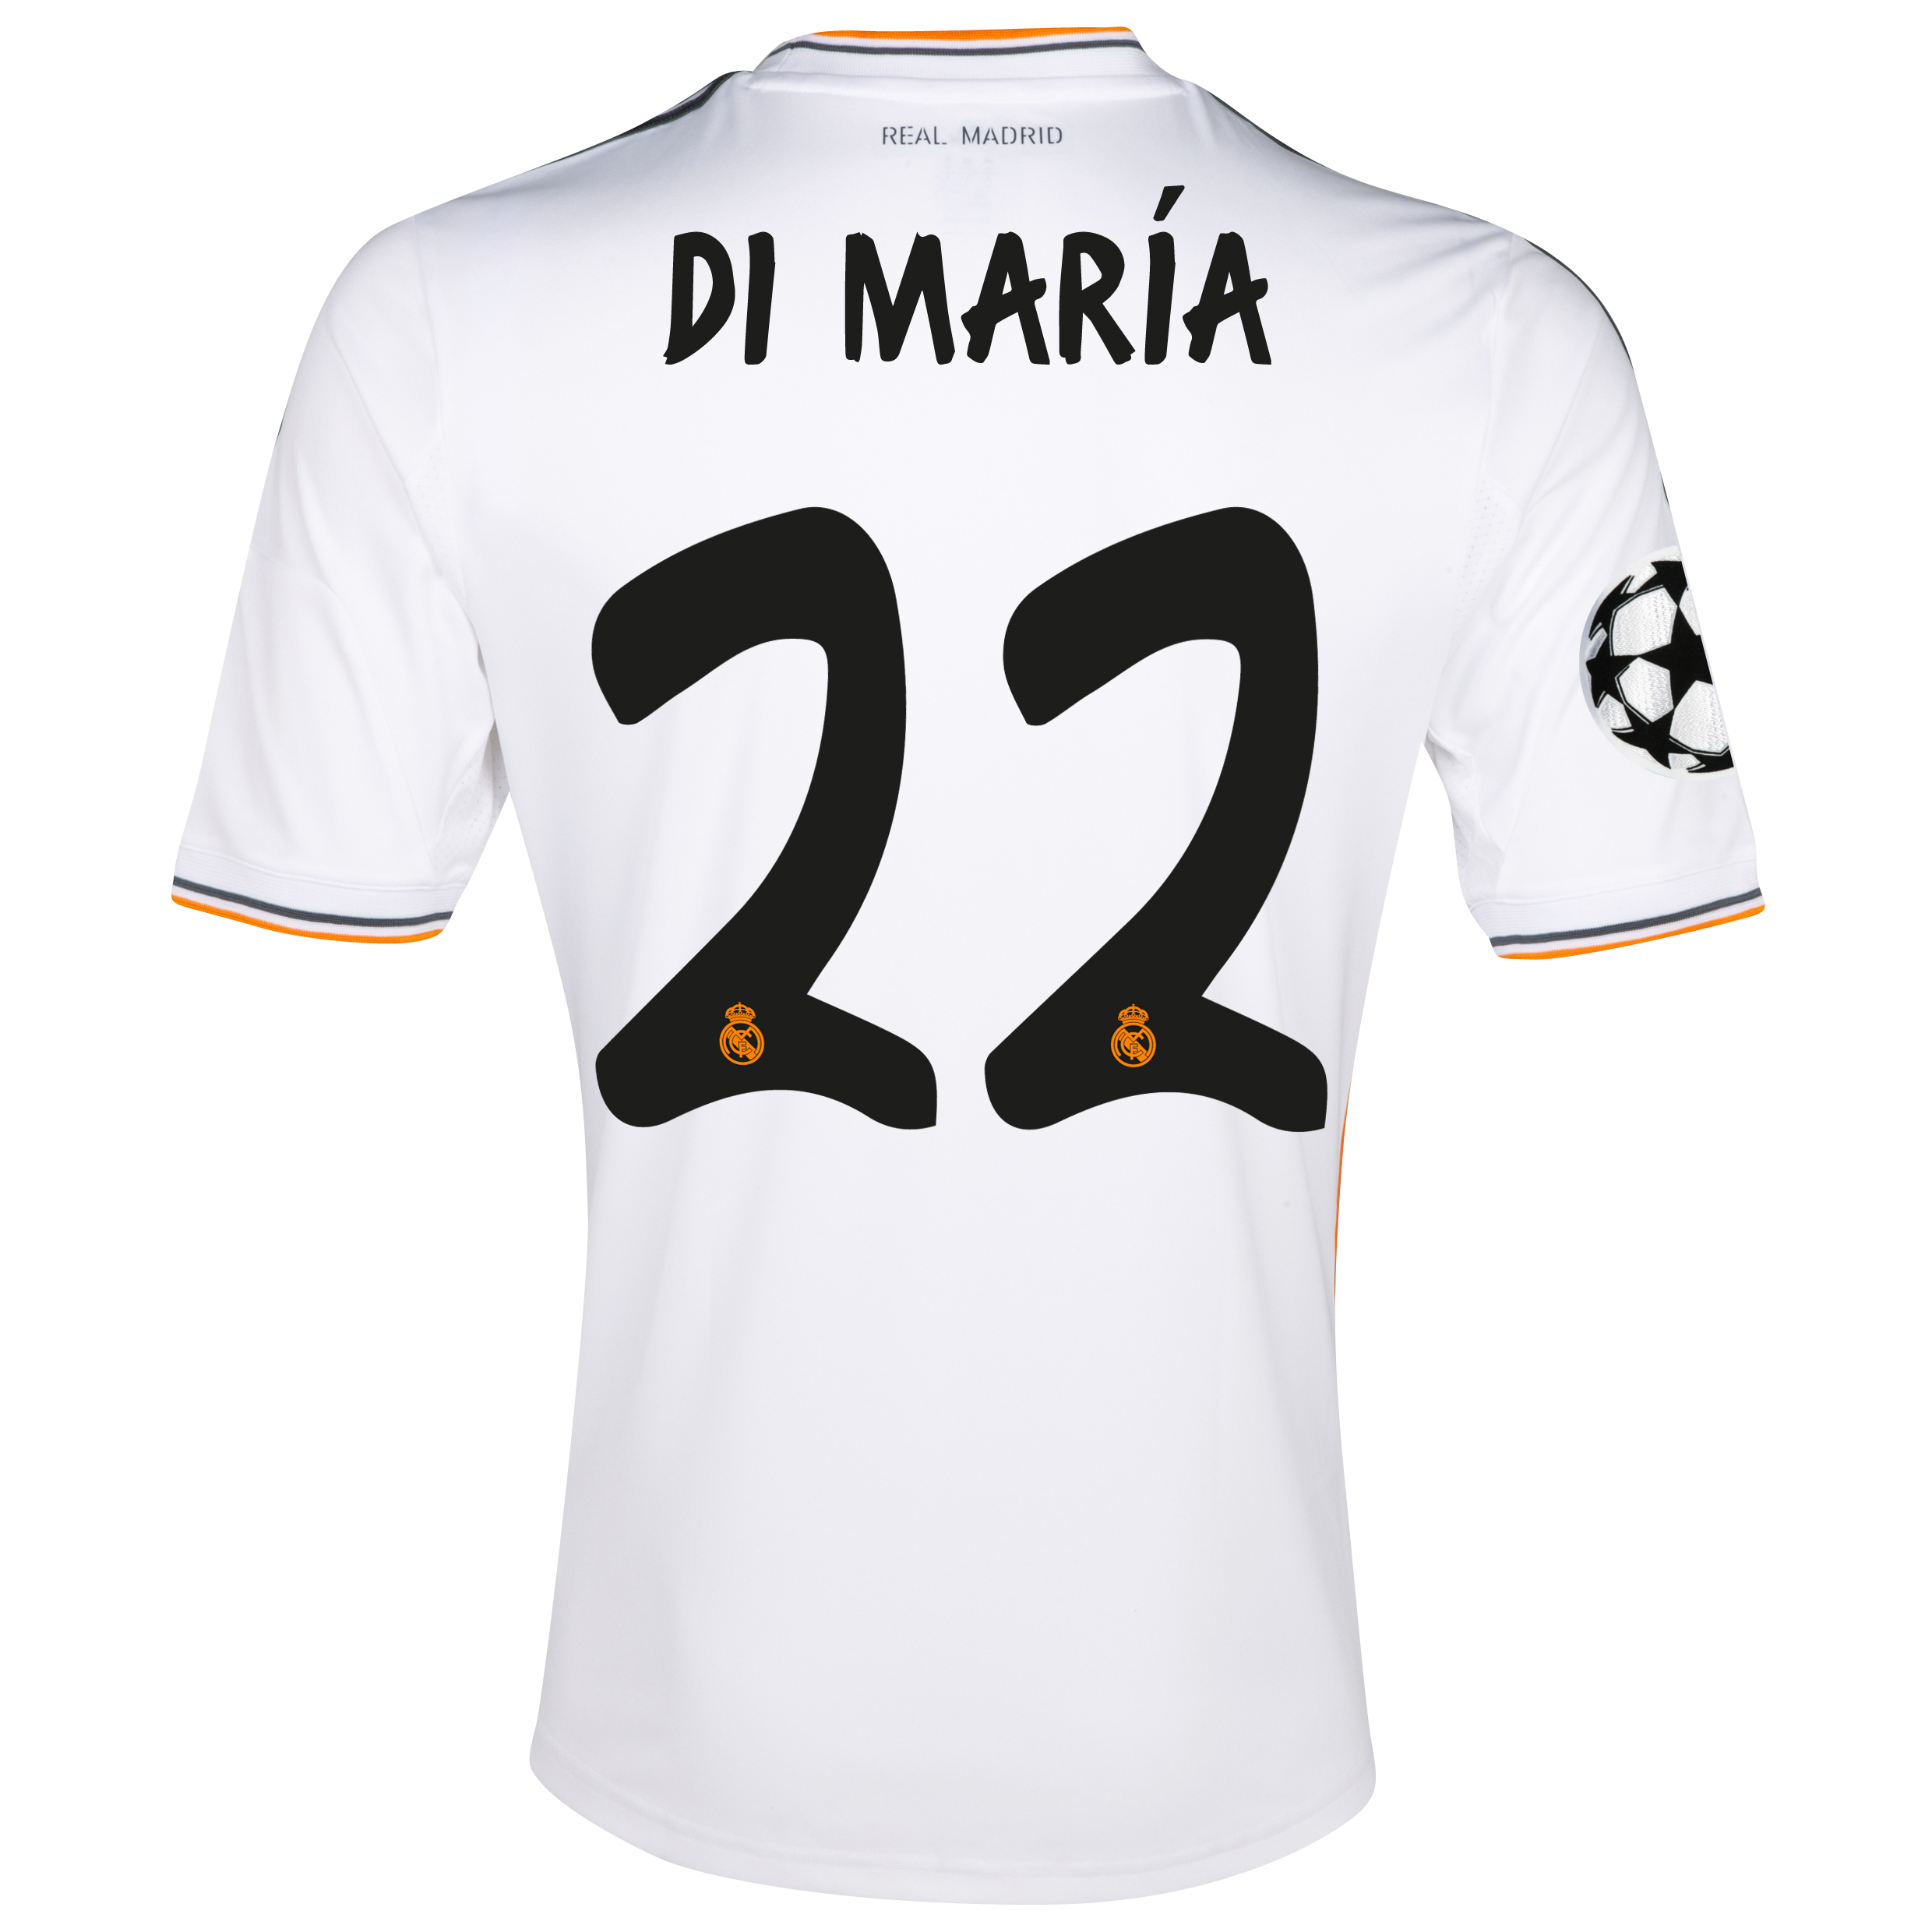 Real Madrid UEFA Champions League Home Shirt 2013/14 with Di María 22 printing